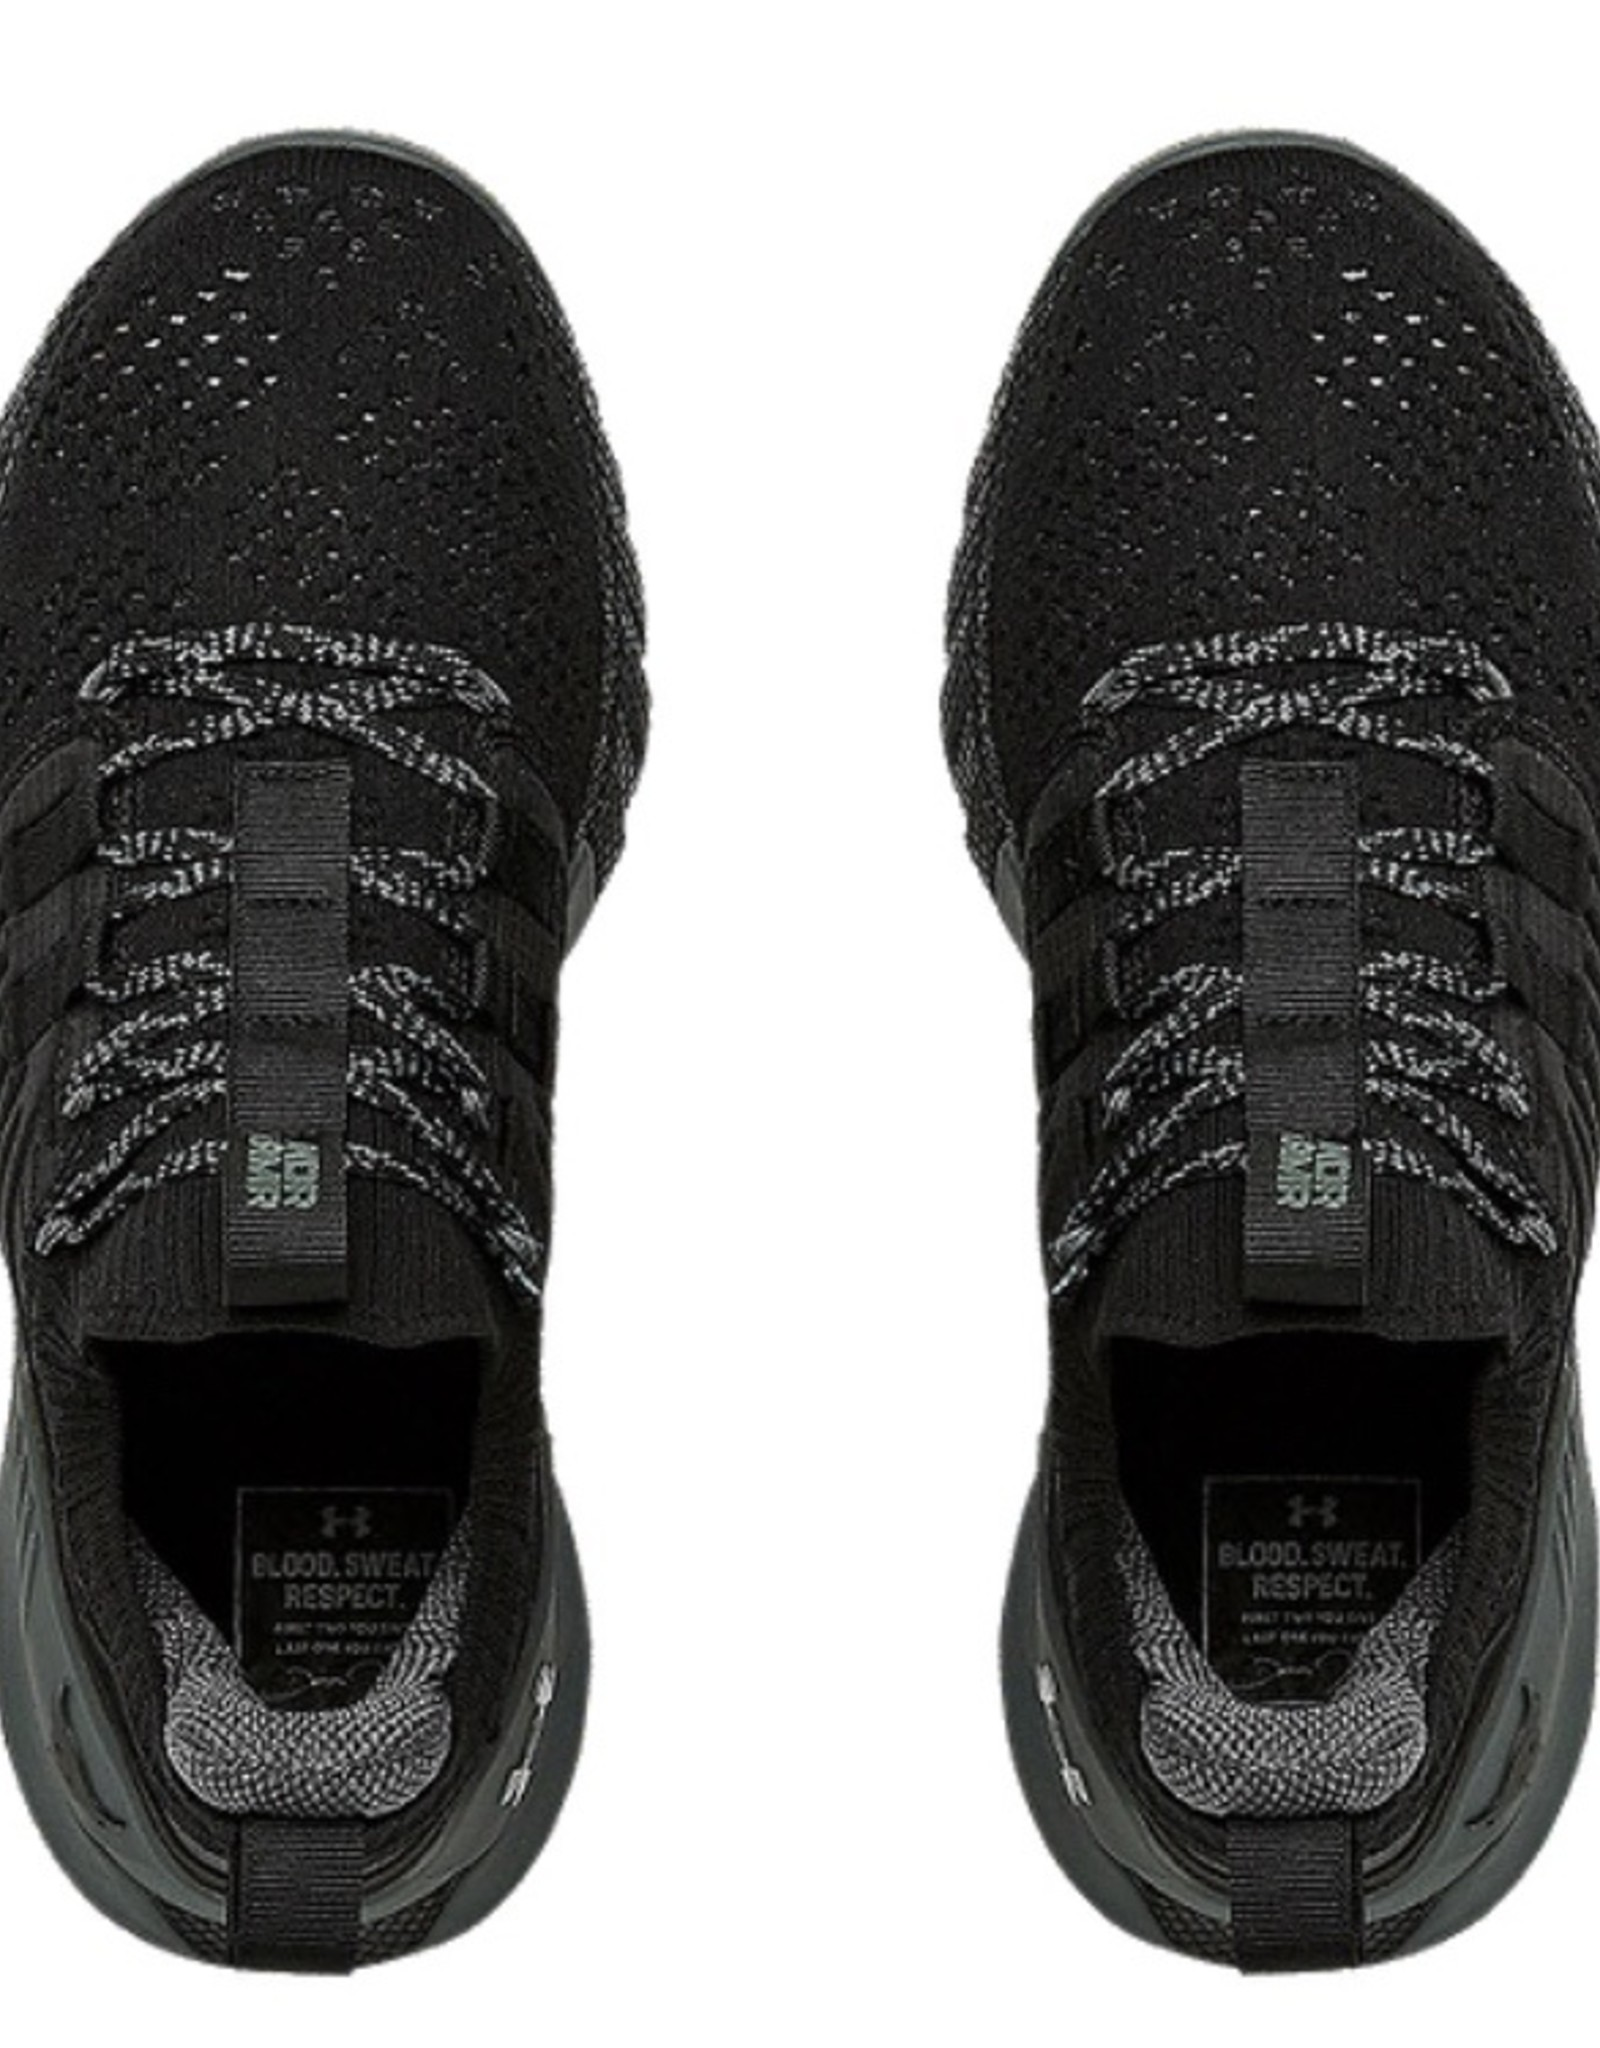 Under Armour UA Project Rock 3 - Black-Pitch Gray-Black